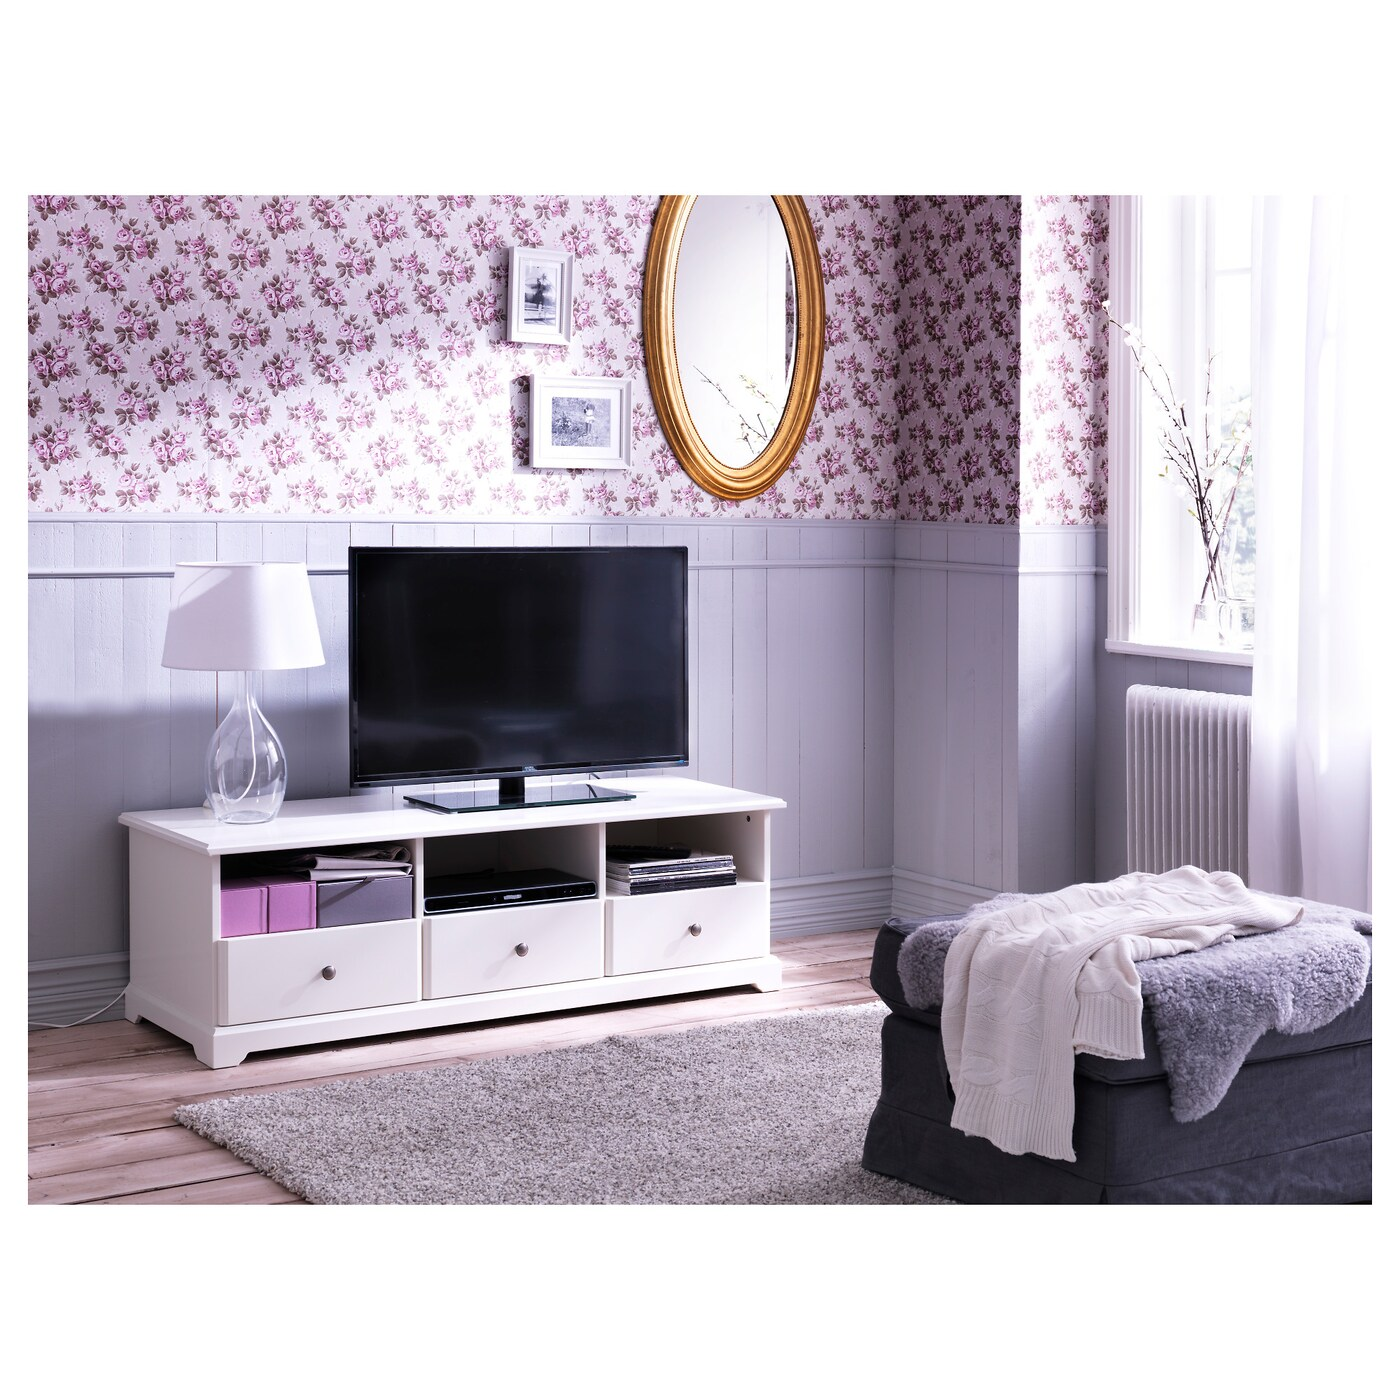 Ikea Liatorp Tv Bank Liatorp Tv Bench White 145x49x45 Cm Ikea